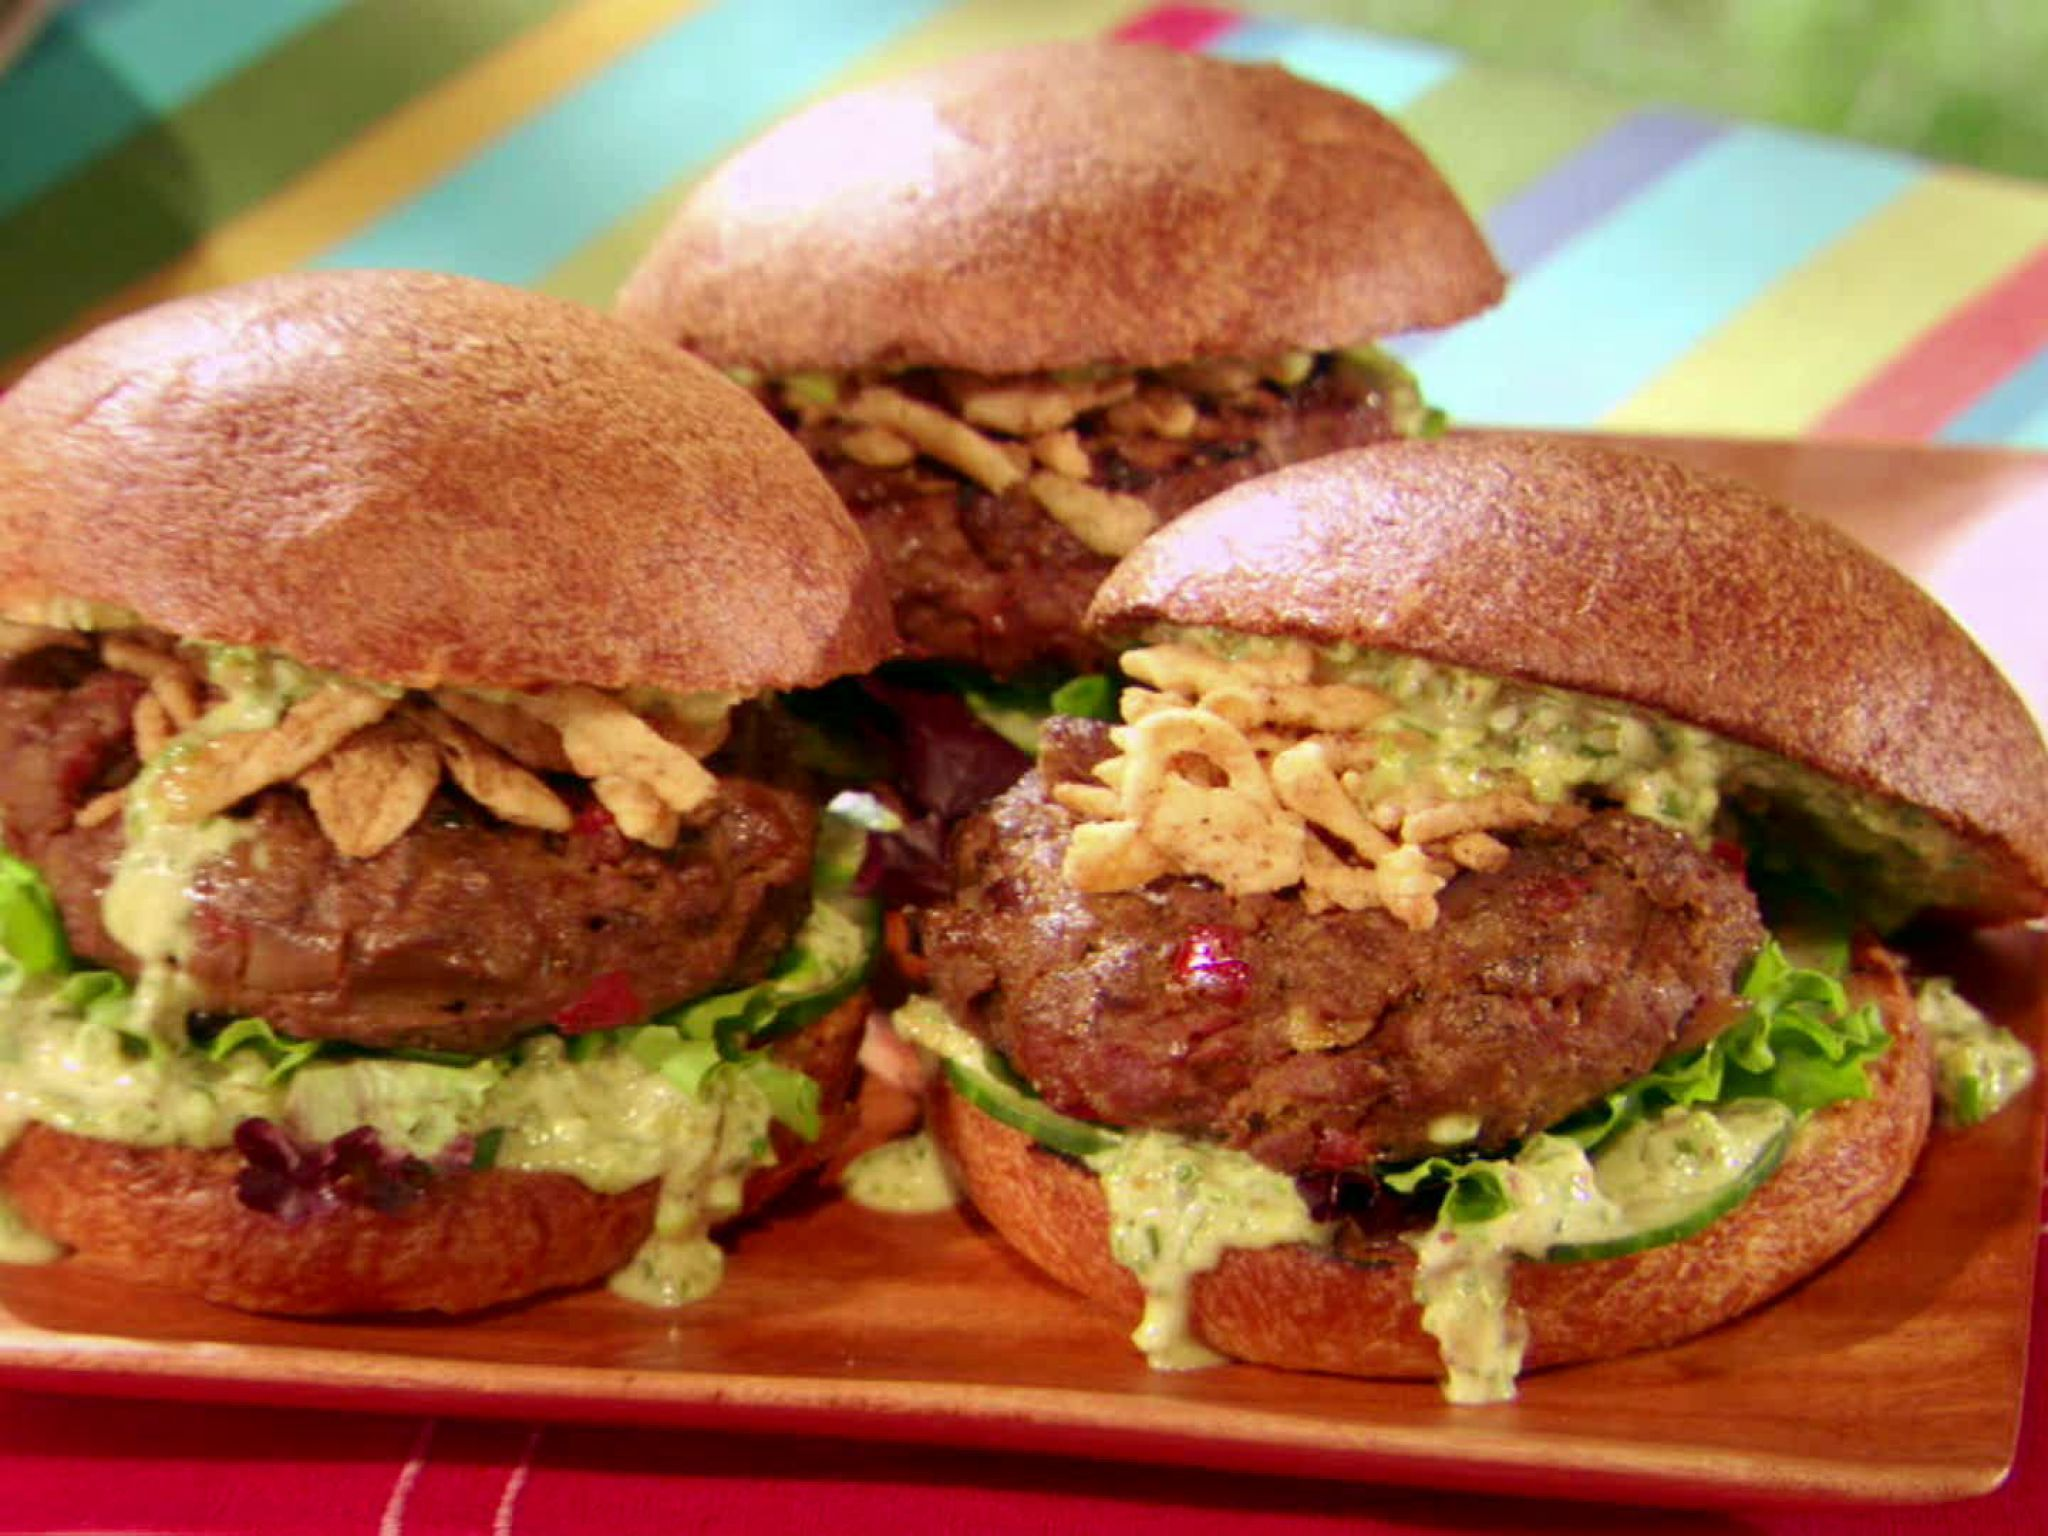 Malaysian Indian Curry Spiced Beef Burgers Recipe Spiced Beef Burger Recipes Beef Food Network Recipes